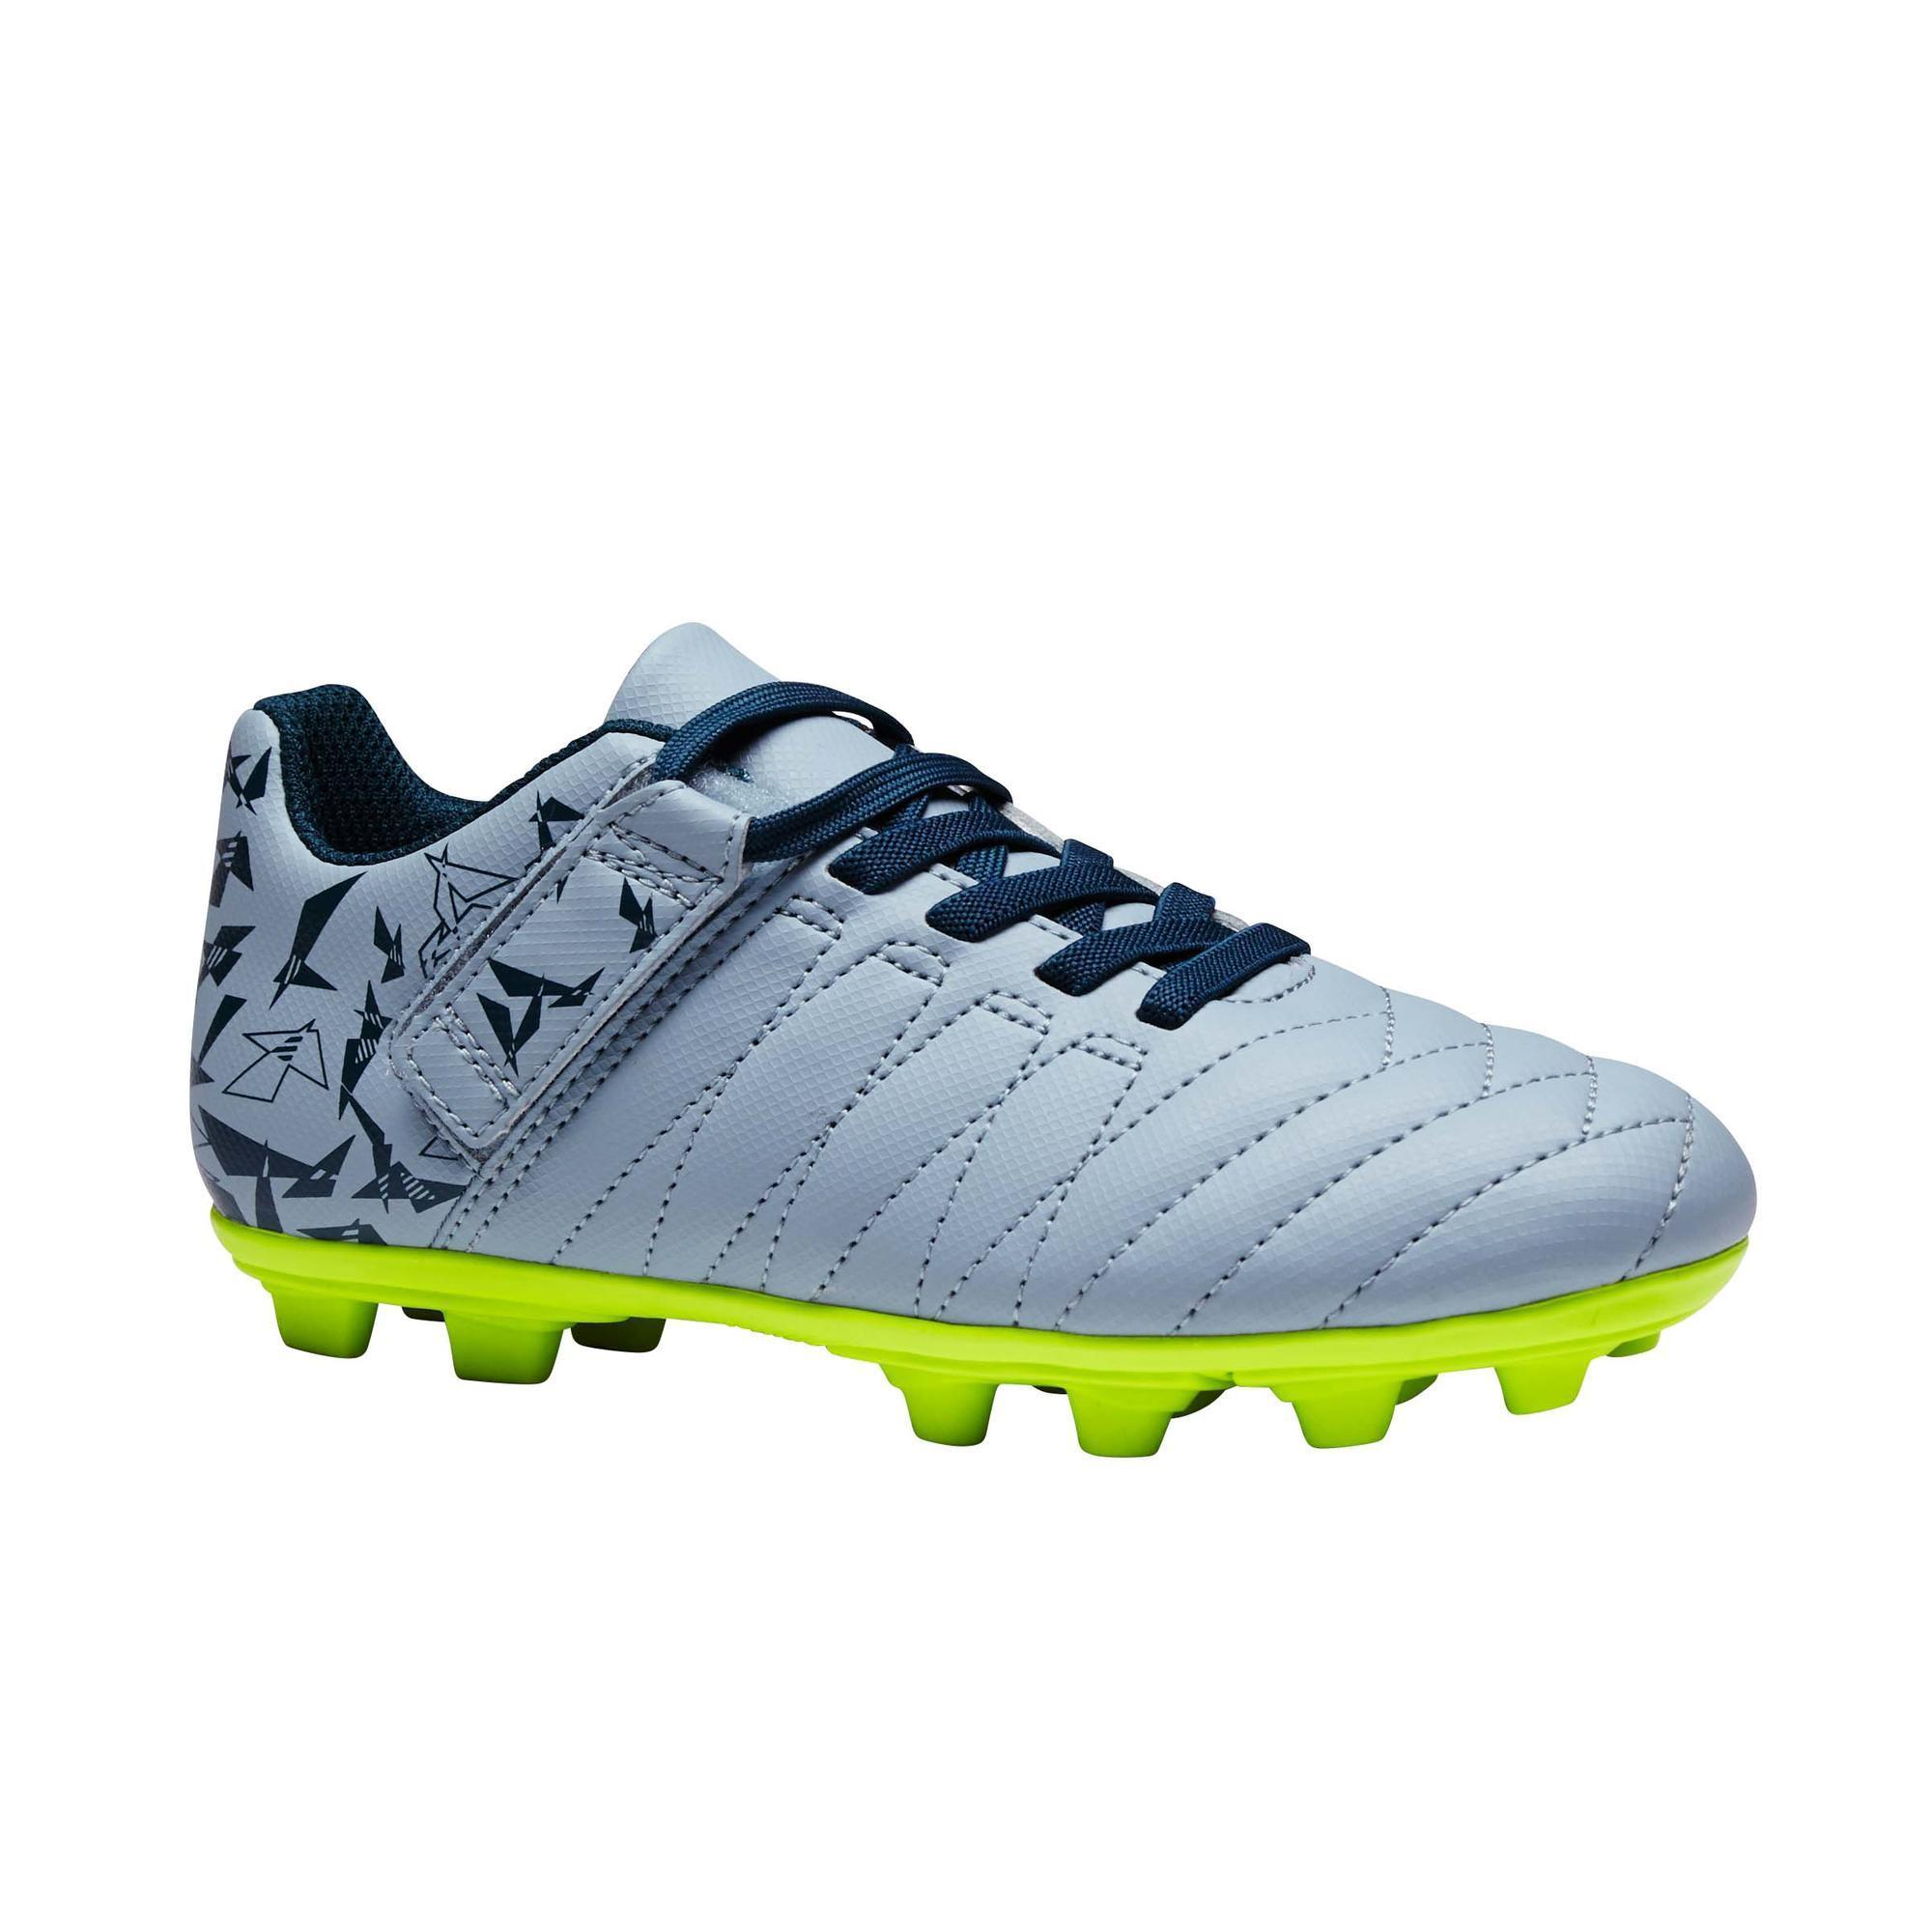 huge discount new high quality attractive price Chaussures de Football pas cher: Kipsta, Nike, Adidas, Puma ...